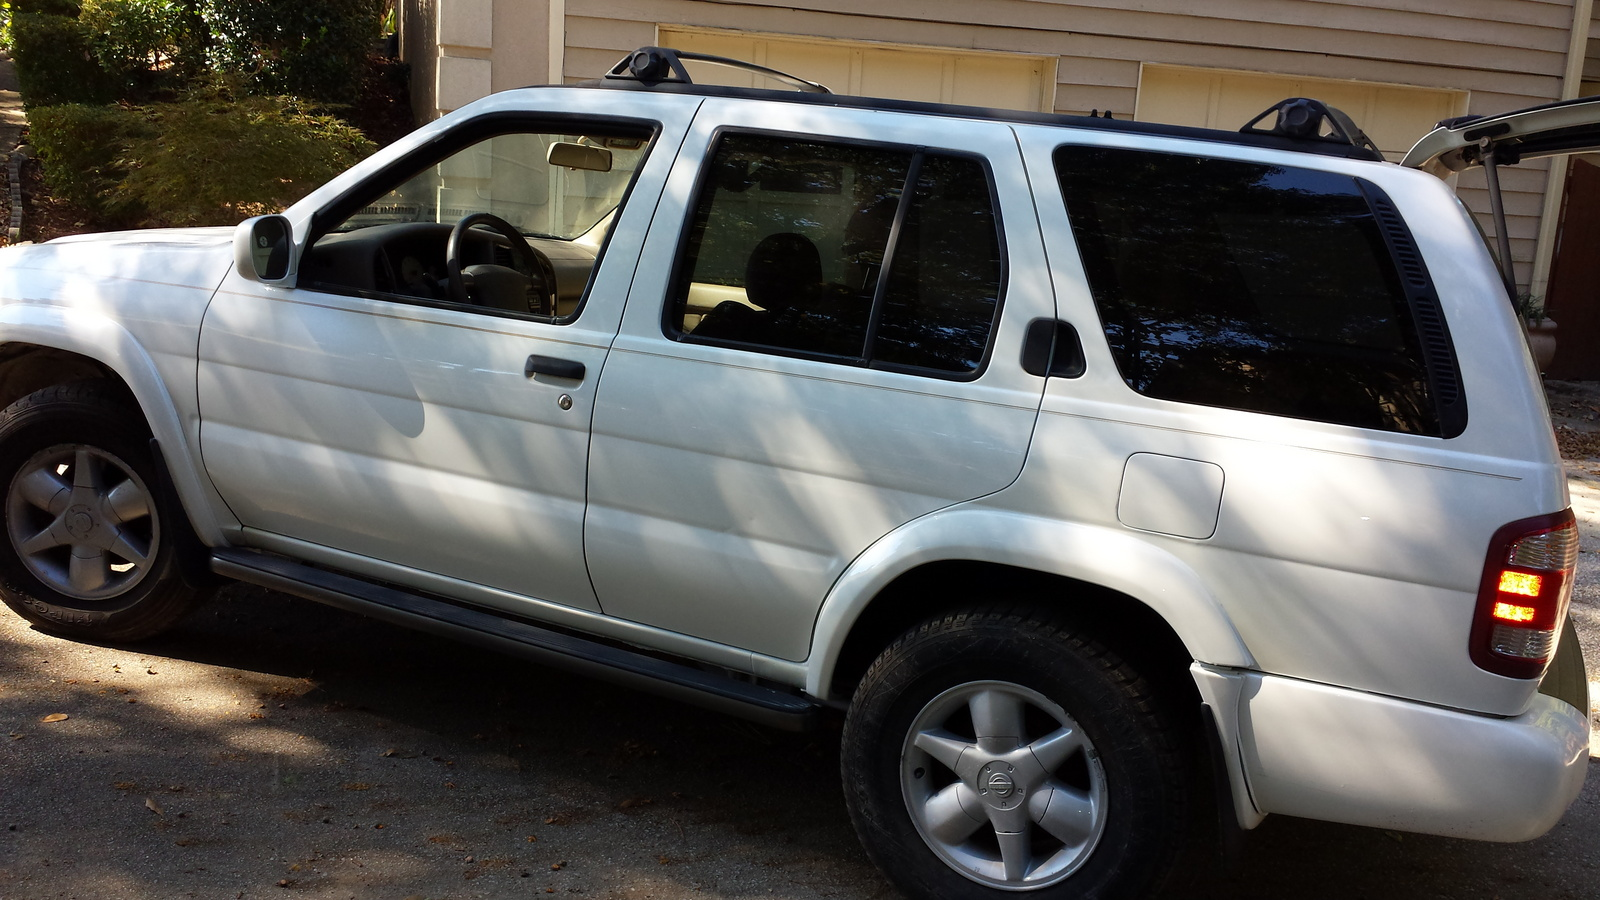 What's your take on the 2001 Nissan Pathfinder?